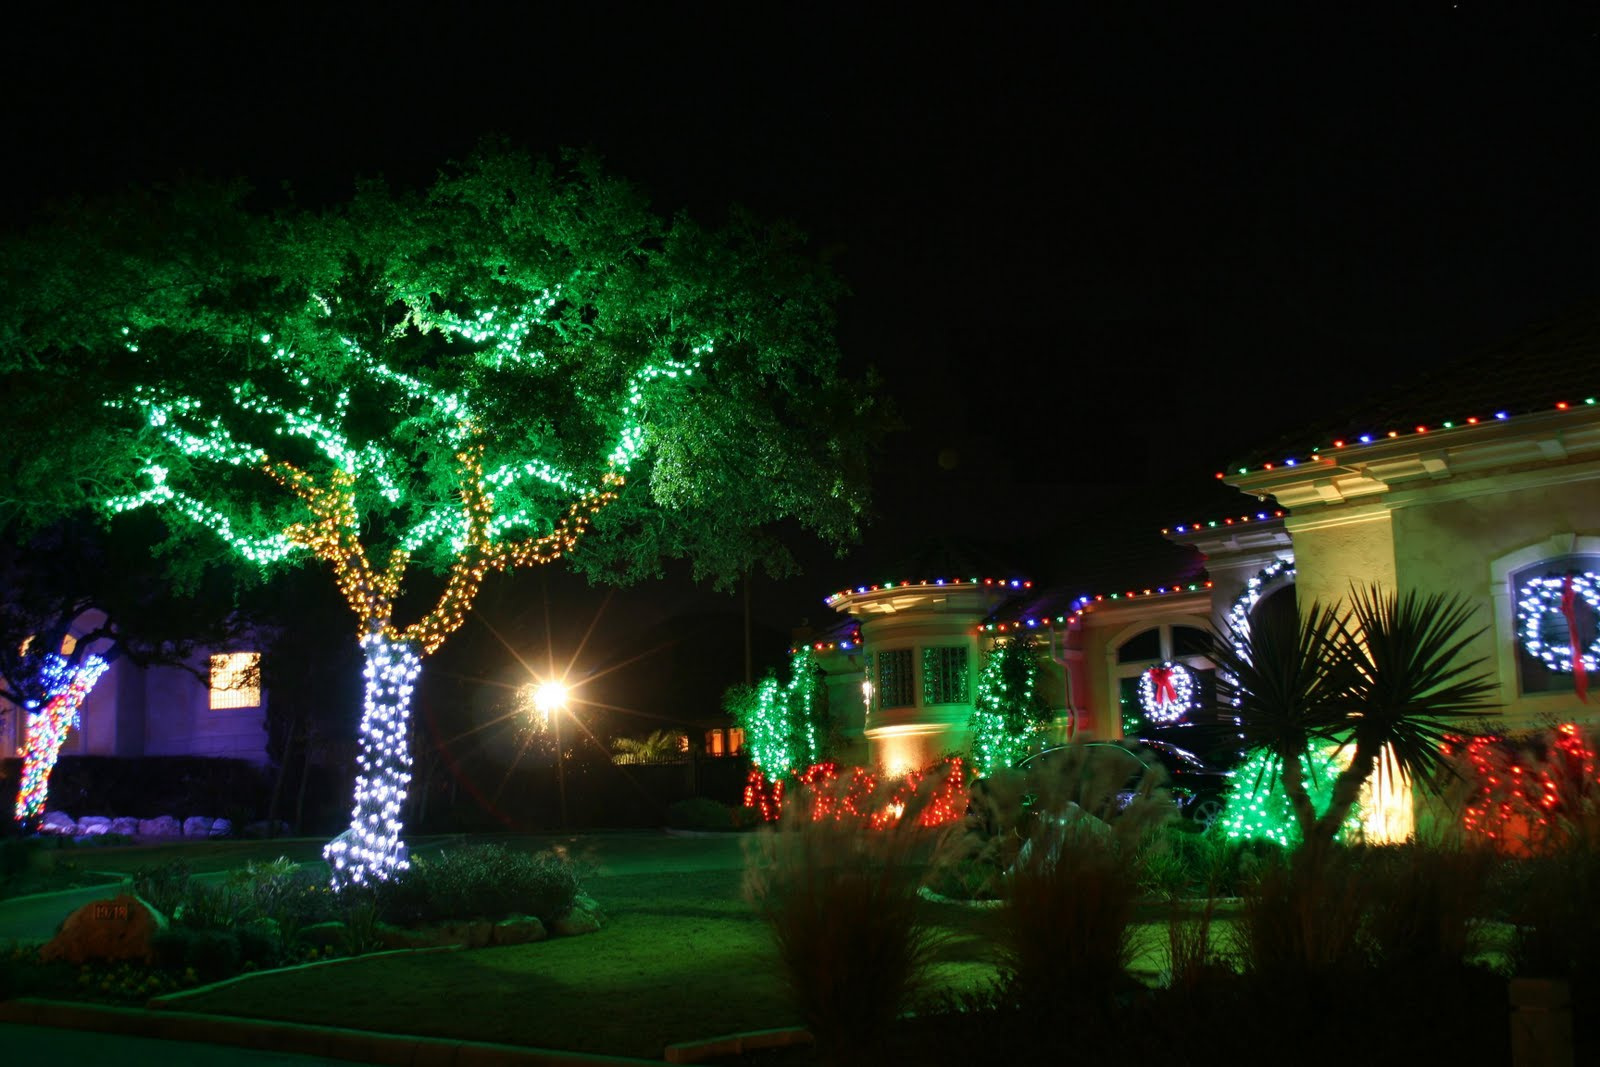 The Safe Choices To Decorate Your Home Or Office For Christmas 15 Light Wiring Ideas Decorating Outdoor Photo 1